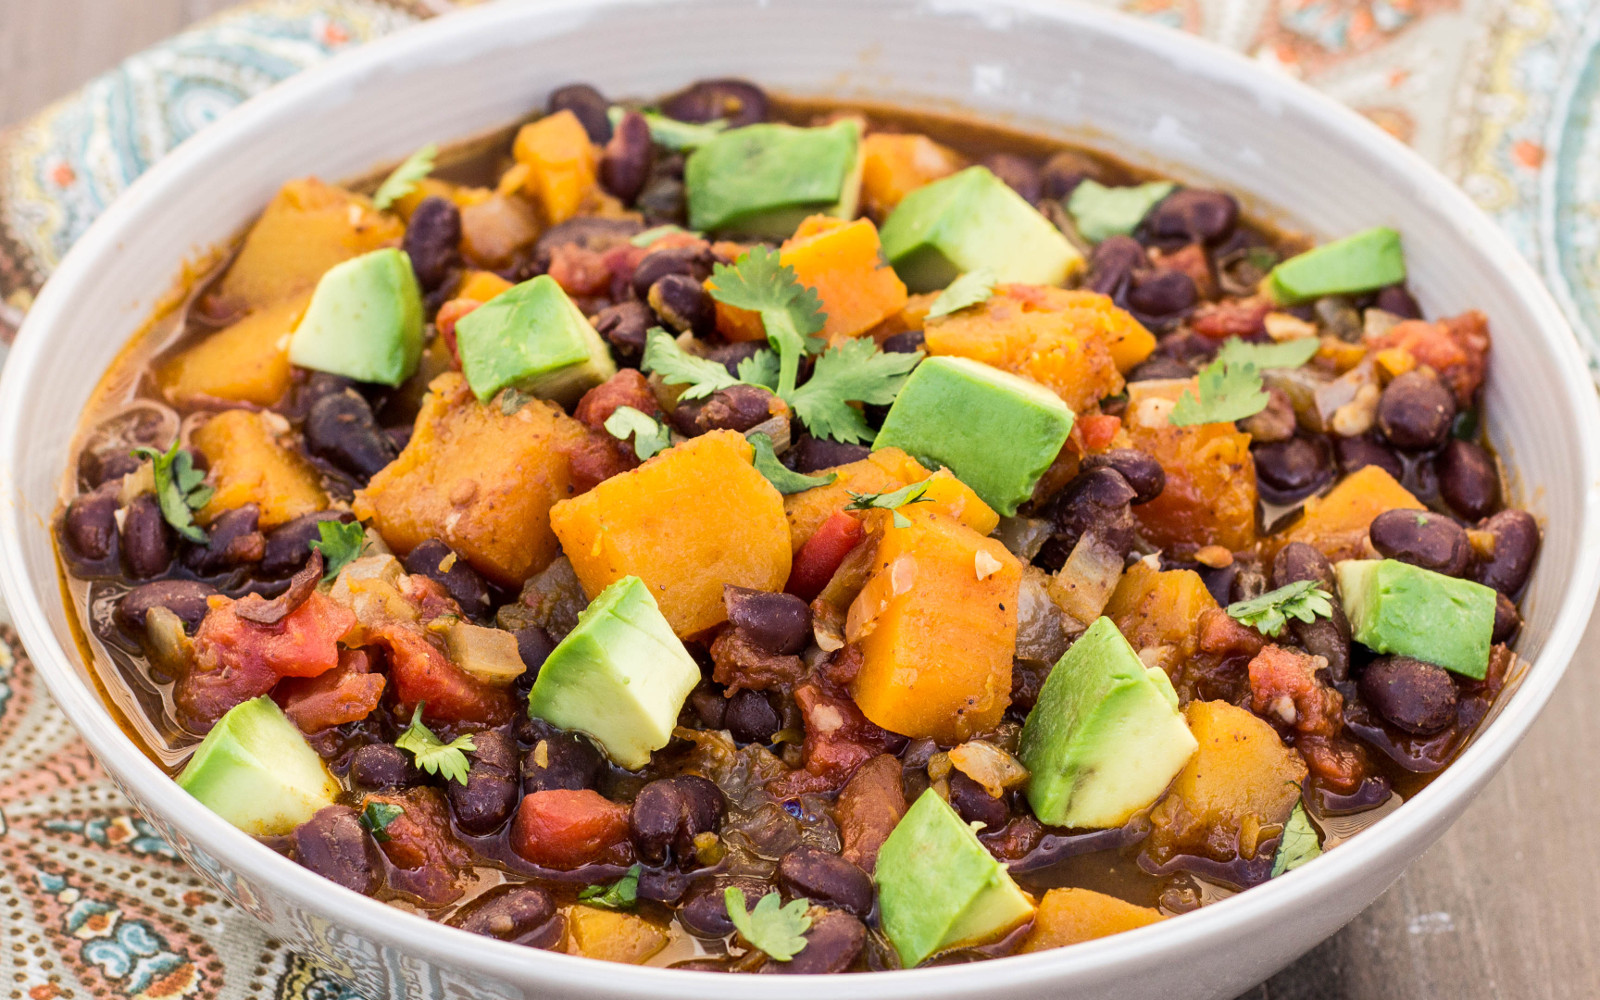 Vegan gluten-free Butternut Squash and Black Bean Chili